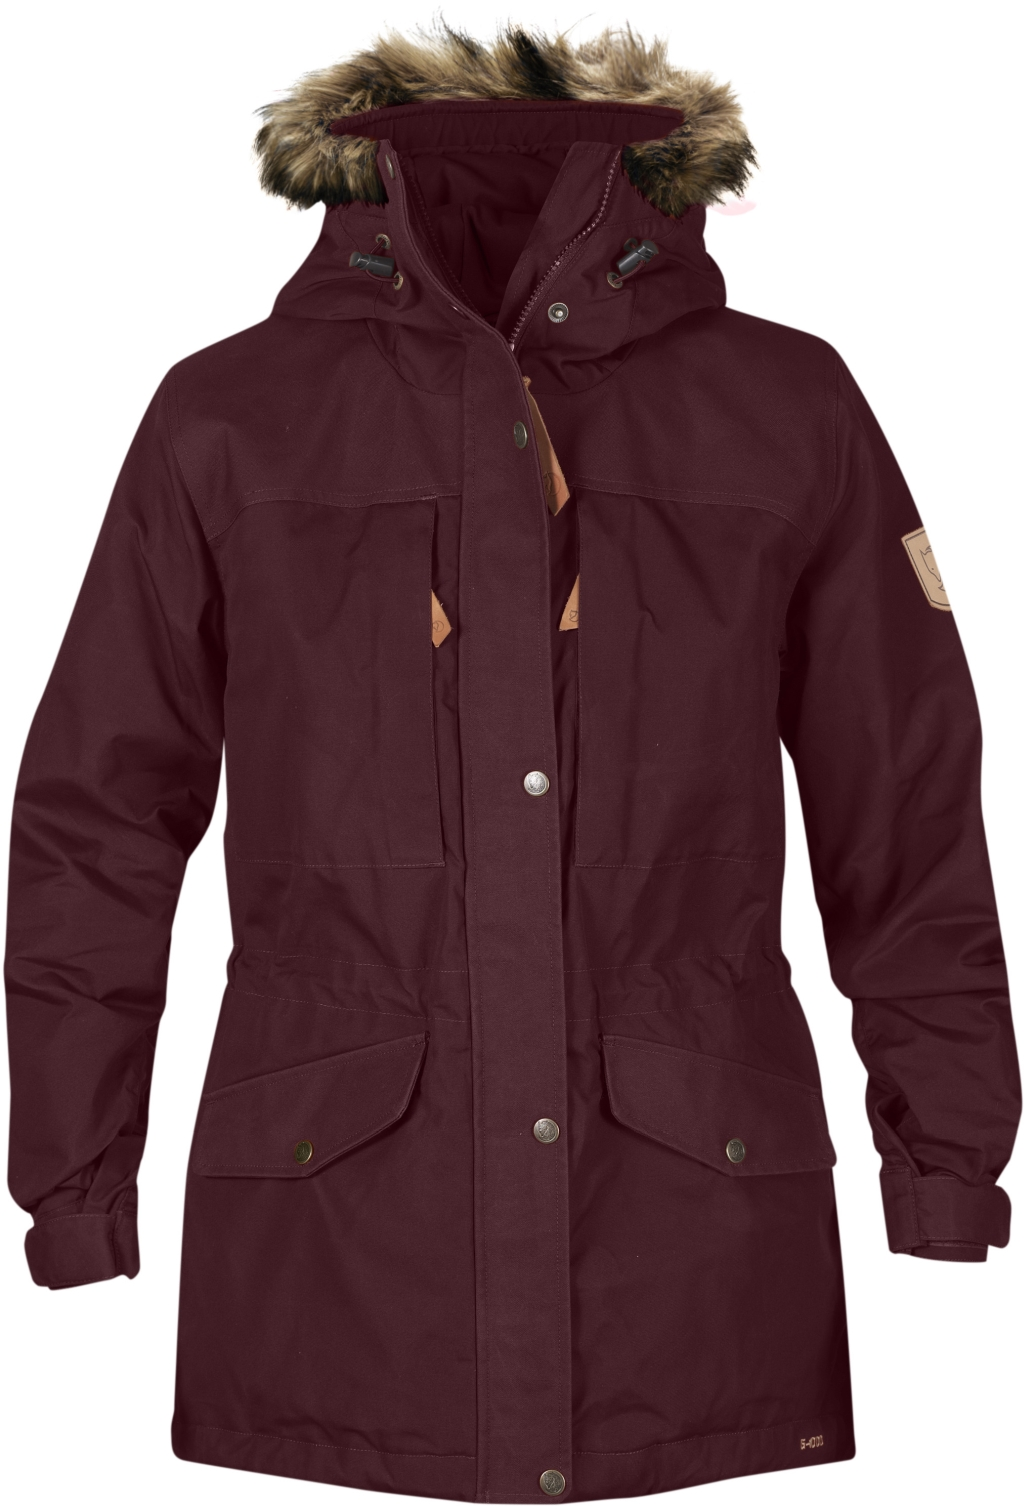 FjallRaven Singi Winter Jacket W. Dark Garnet-30